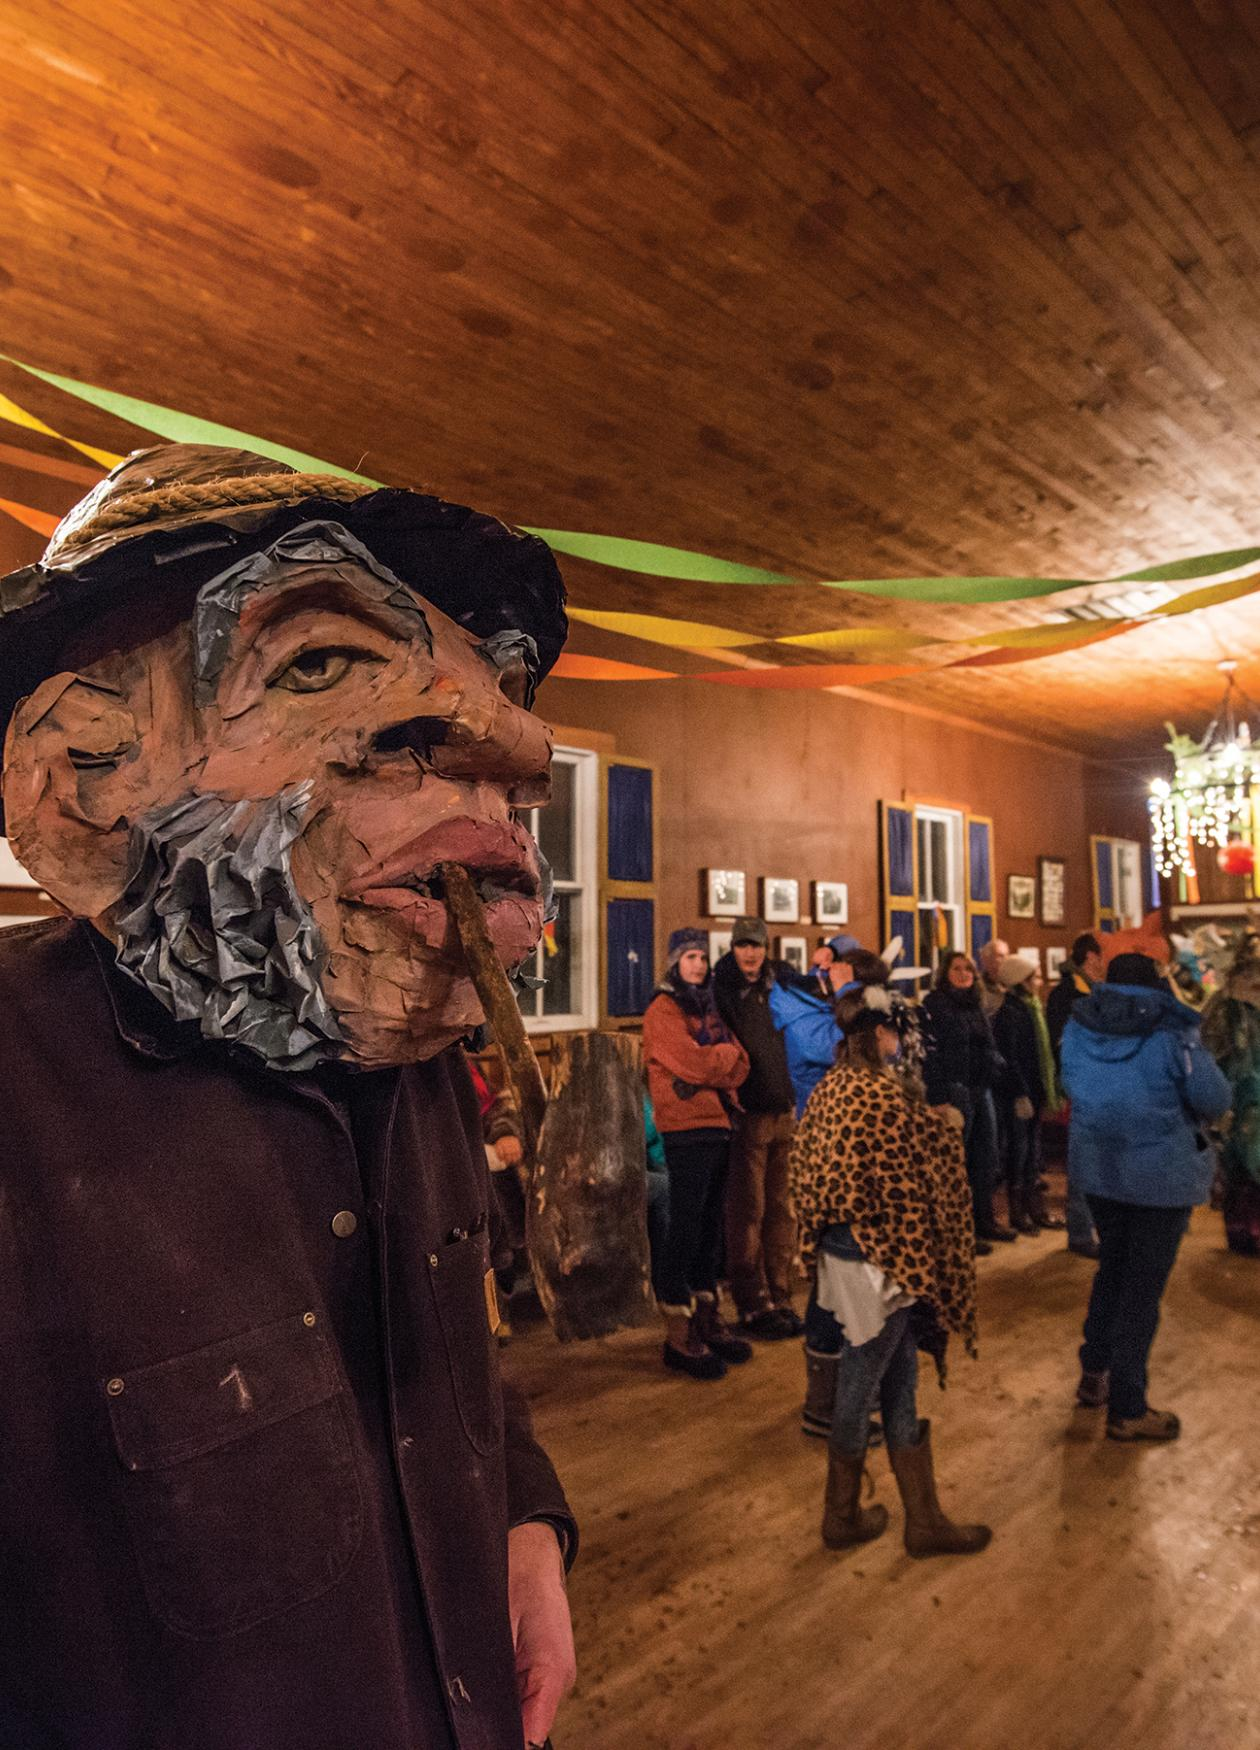 Color photo of a man wearing a mask at a costume festival, indoors.